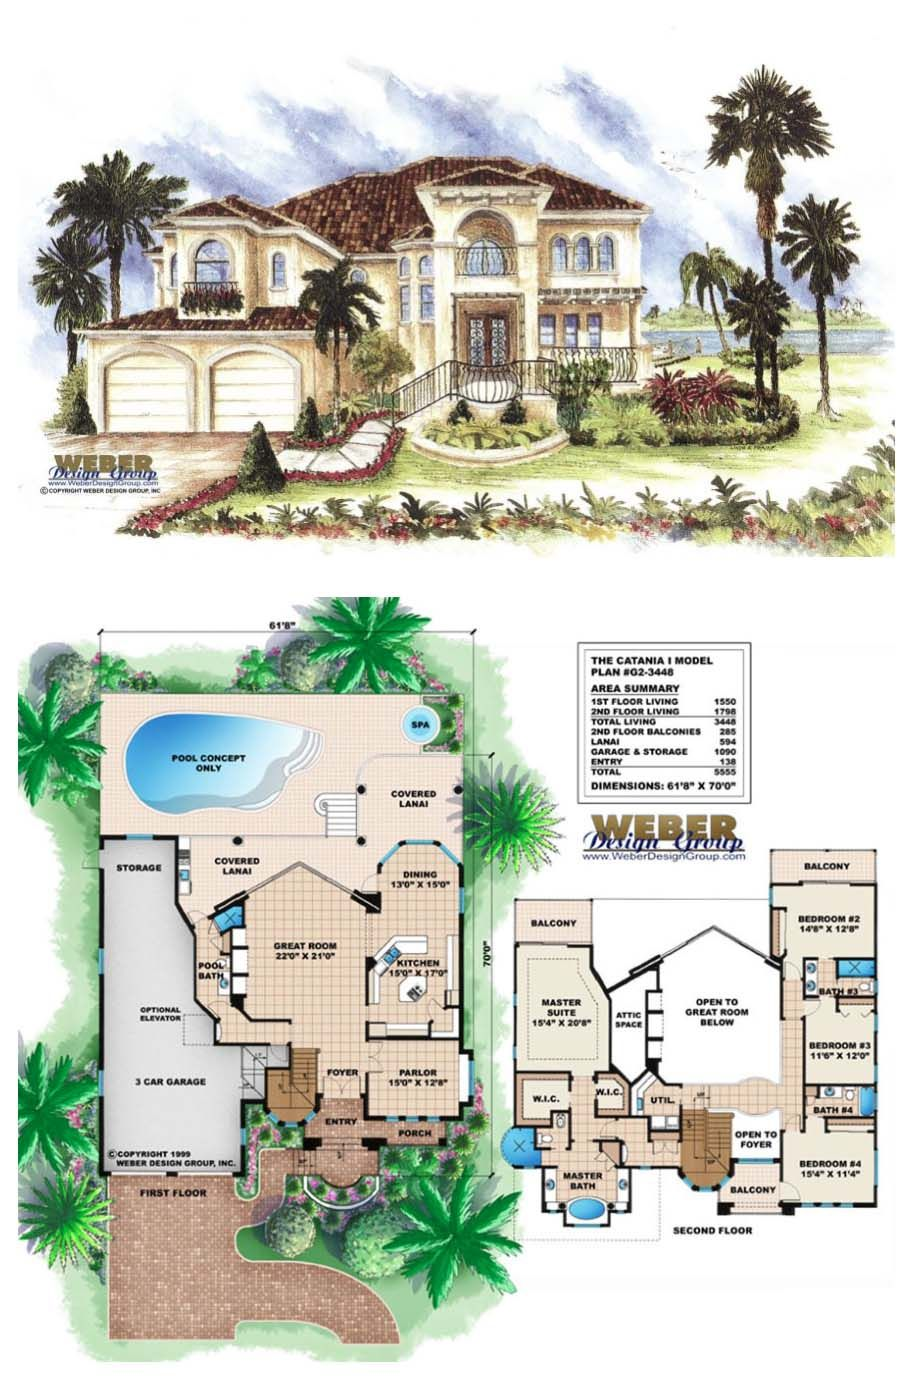 Mediterranean House Plan 2 Story Luxury Home Floor Plan With Pool Mediterranean House Plans Luxury House Plans Pool House Plans